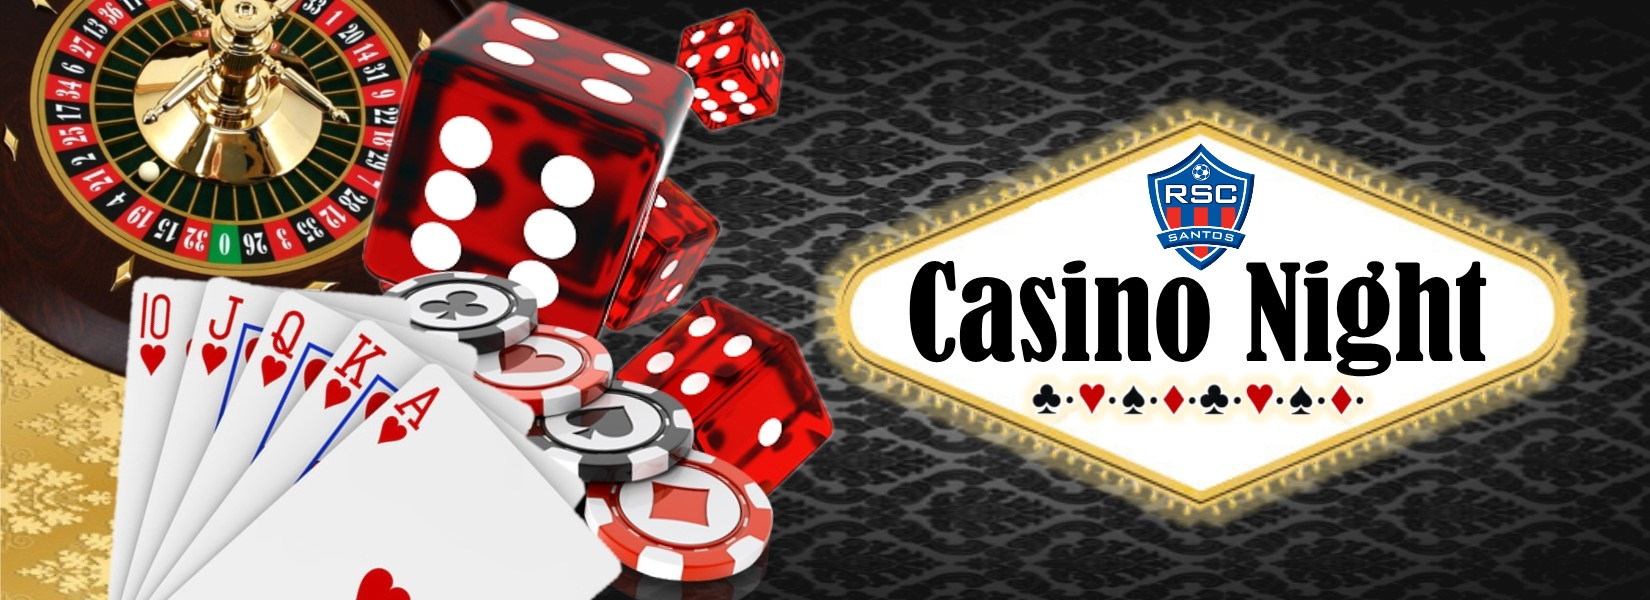 RSC Casino & Live Auction - Sat. March 7, 2020 - SAVE THE DATE!